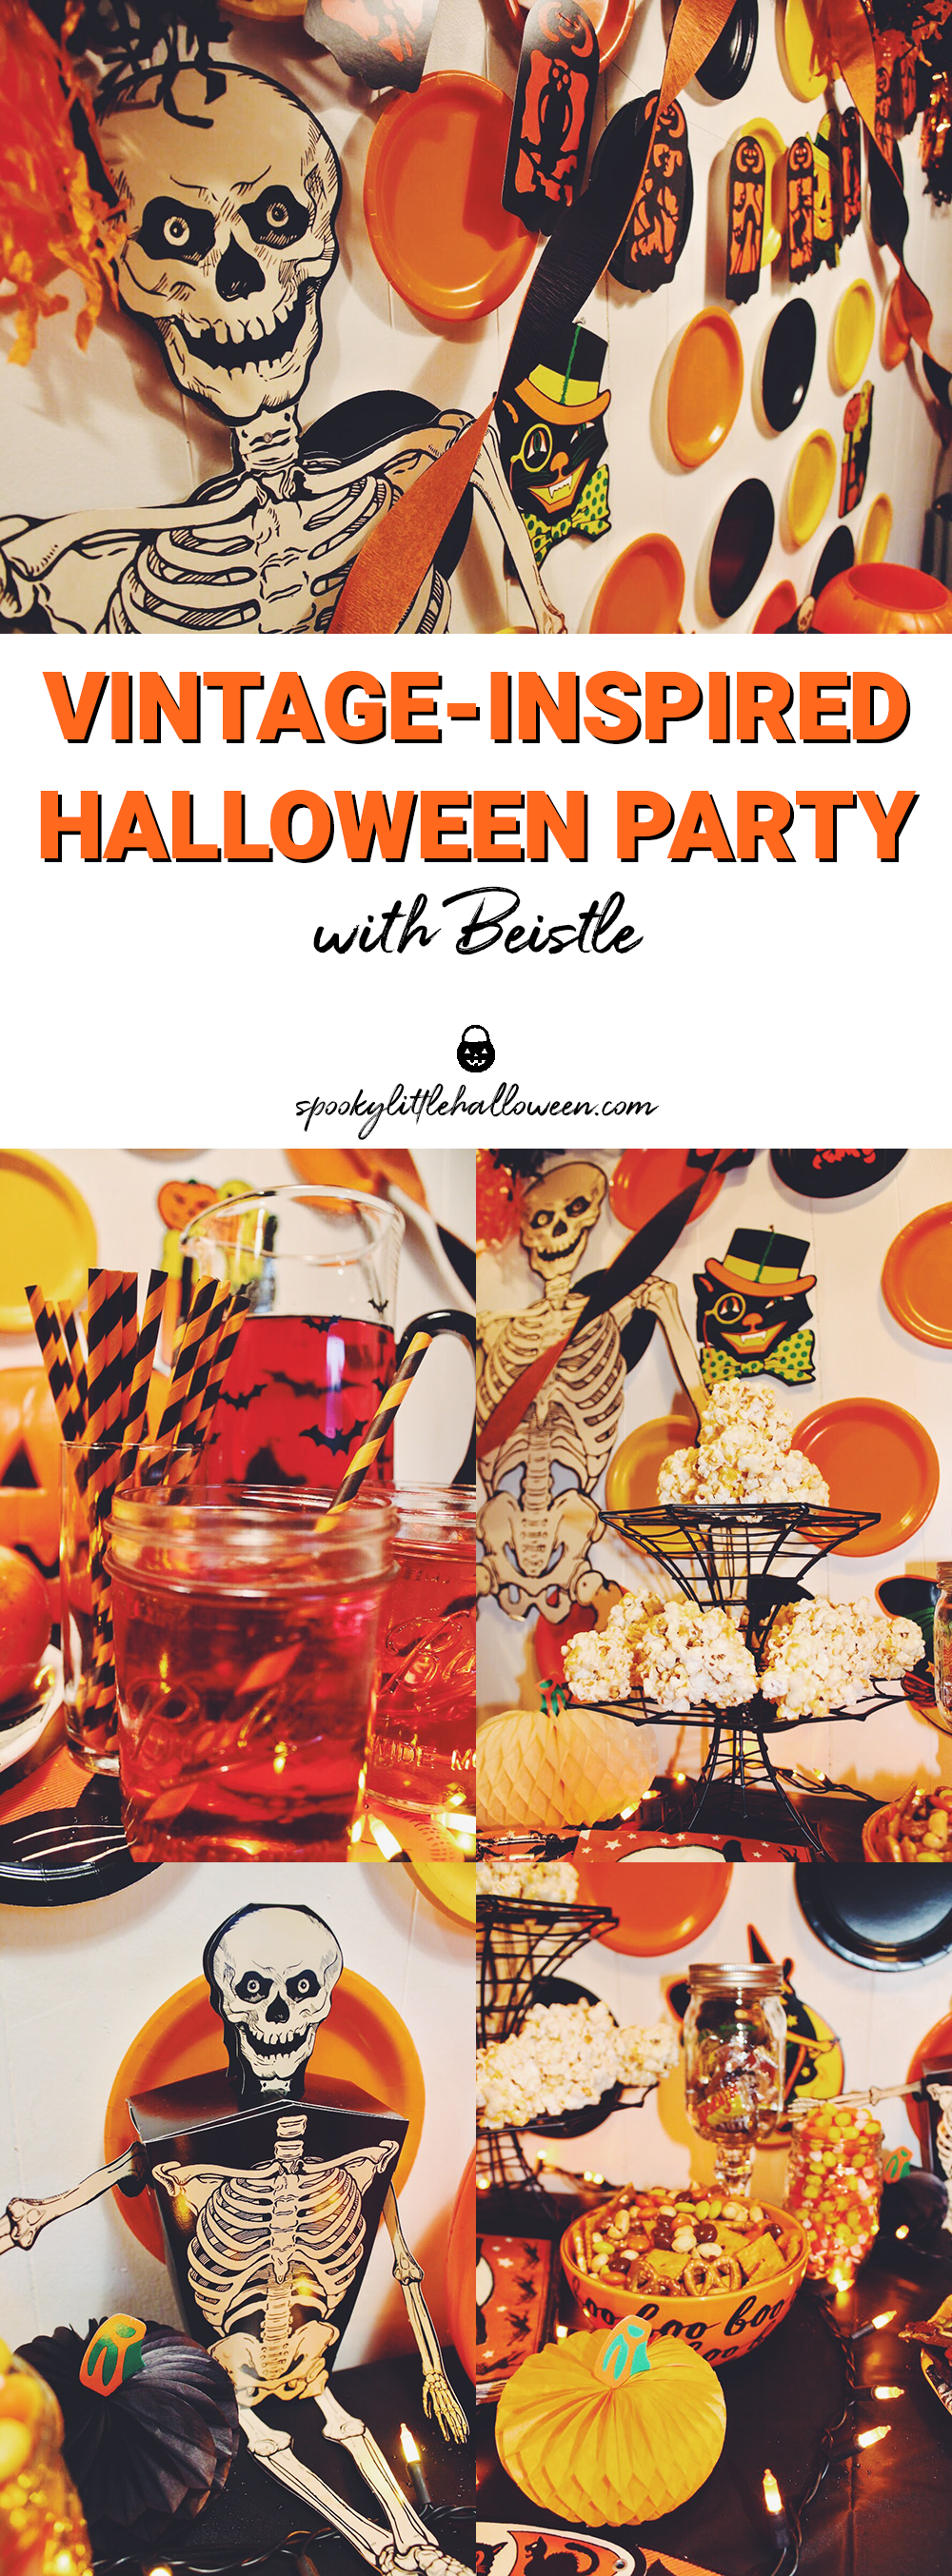 Vintage Inspired Halloween Party With Beistle  Spooky Little Halloween